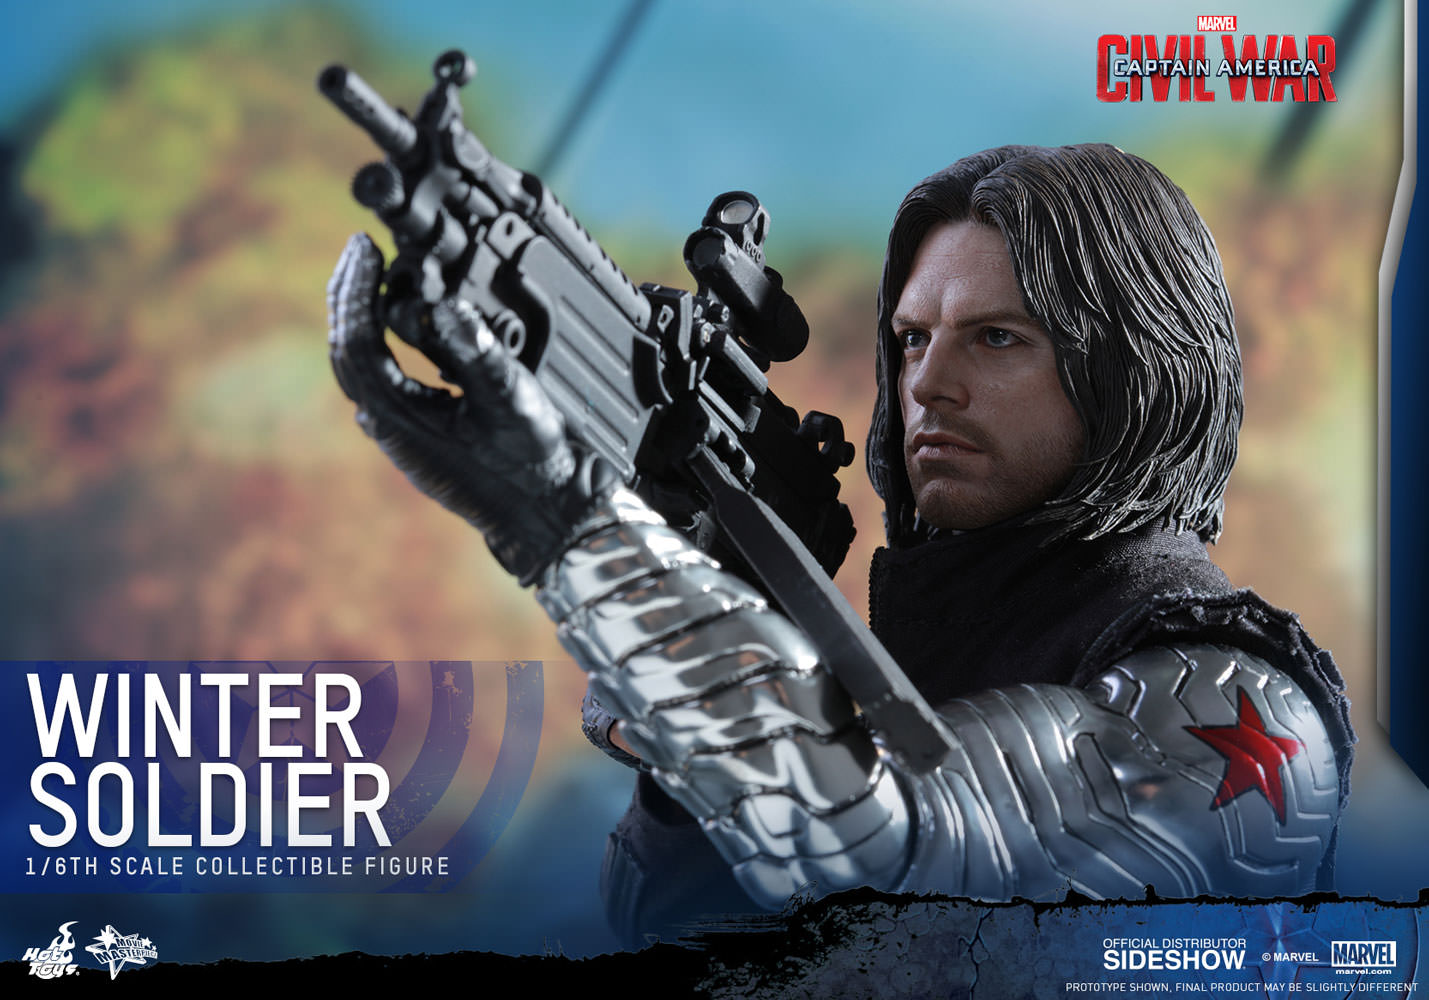 captain america the winter soldier full movie online free download